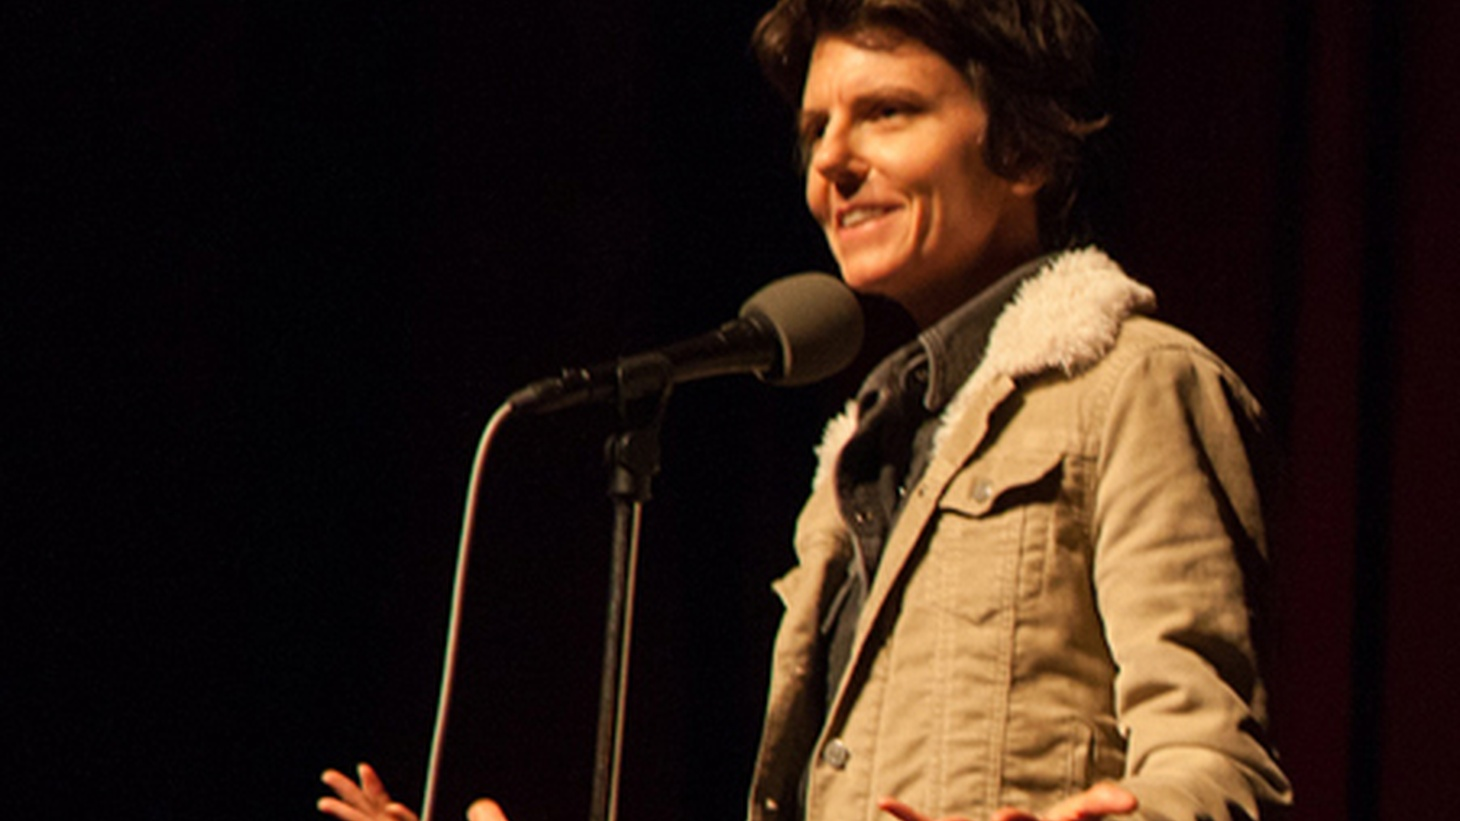 Selected features from The Moth Radio Hour: Tig Notaro must find new ground with her step-father after her mother's sudden death. Samuel James navigates his way through the foster care system as a child. And Andrew Solomon discovers an artistic community thriving in post-Taliban Afghanistan.